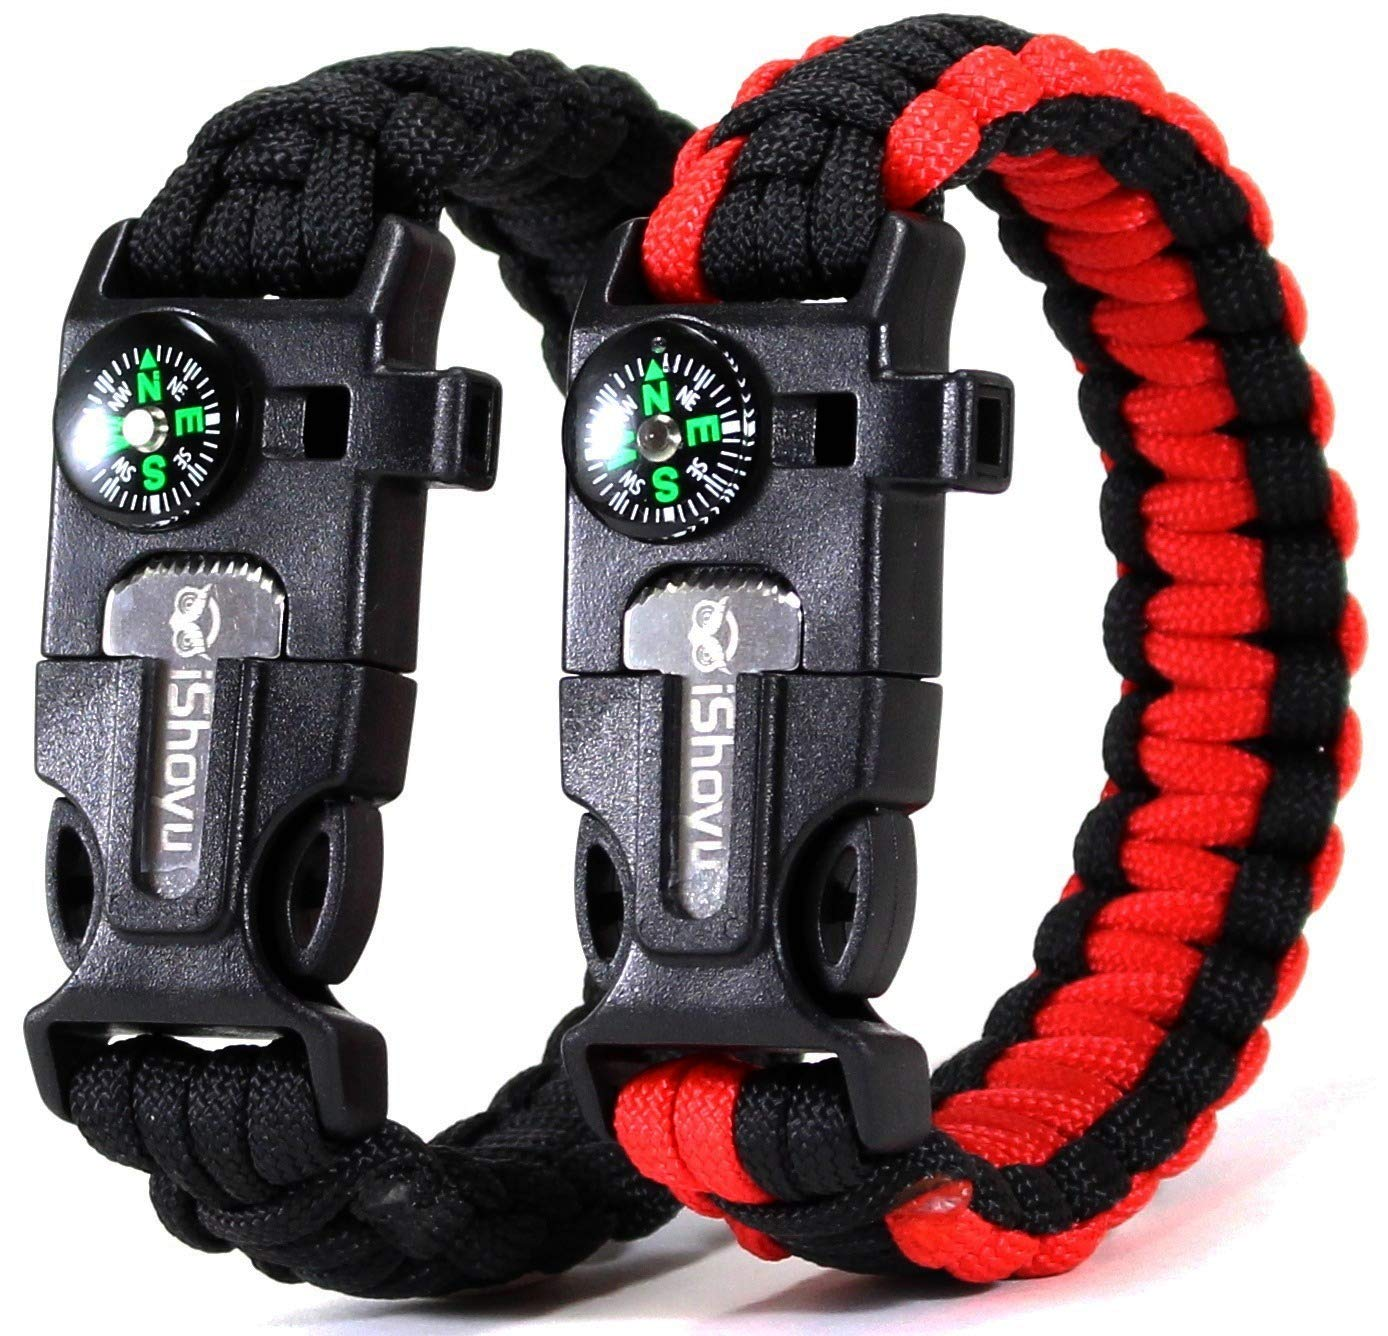 Survival Paracord Bracelet Hiking Gift | Best Emergency Men EDC 5 in 1 Tactical Tool Kit for Camping, Hunting, Fishing, Outdoor Wilderness Adventure Gear | Fire Starter, Compass, Whistle, Scraper iShoyu